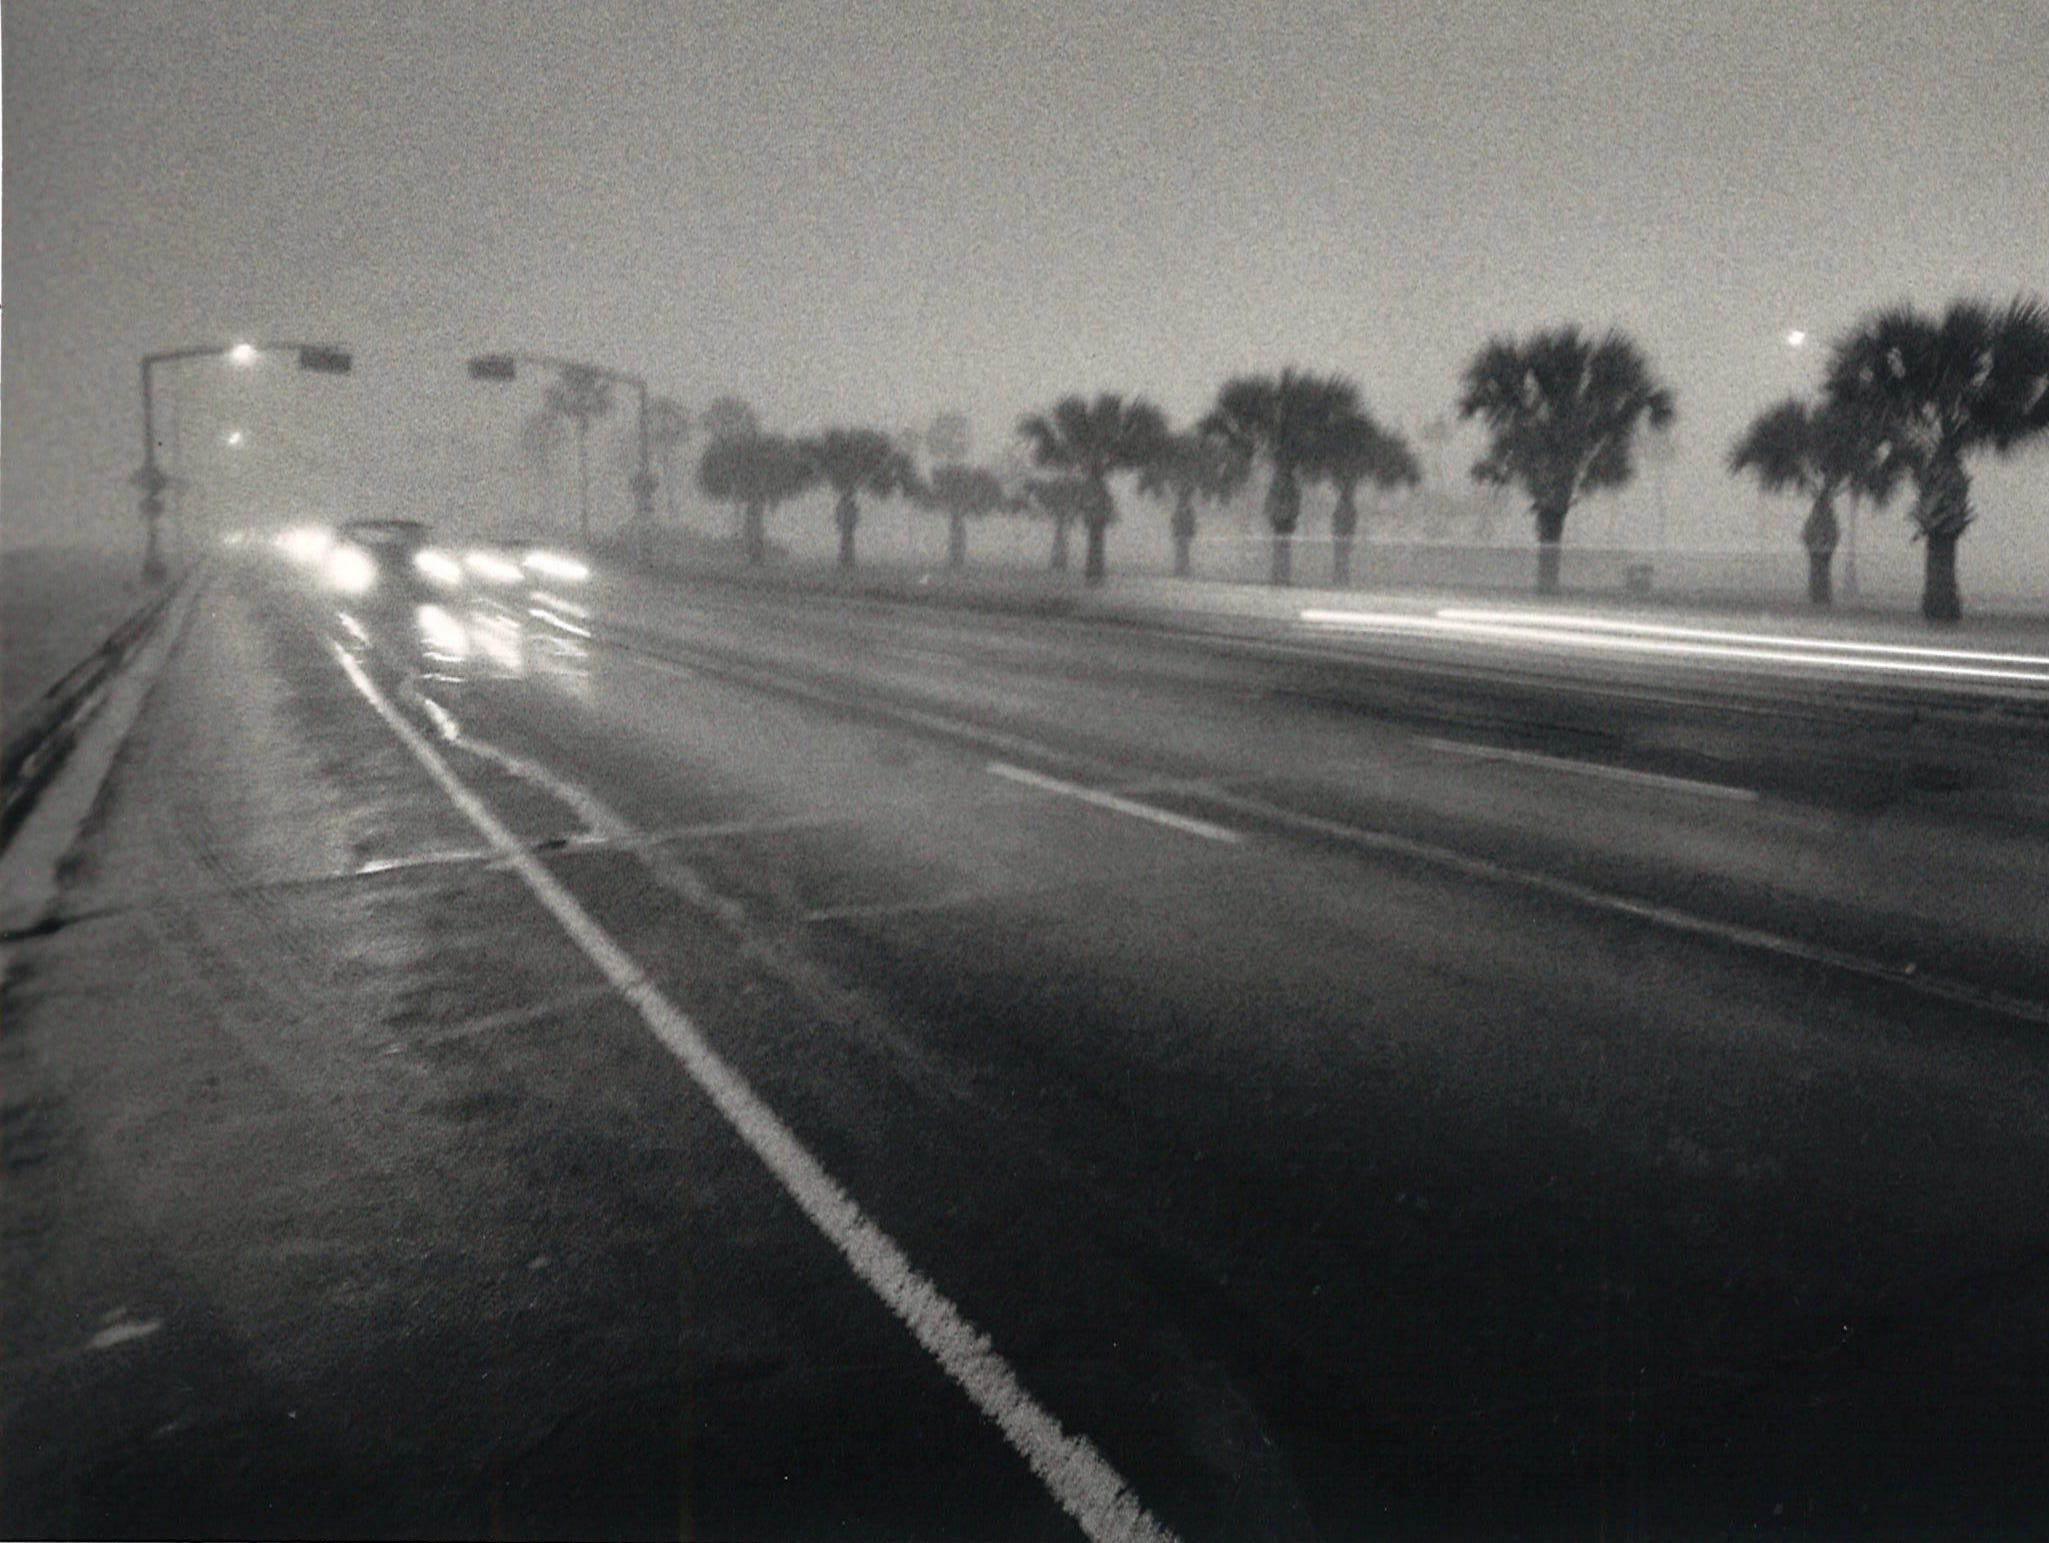 Fog and slick streets made Shoreline Blvd. treacherous for motorists in Corpus Christi on Dec. 27, 1985.